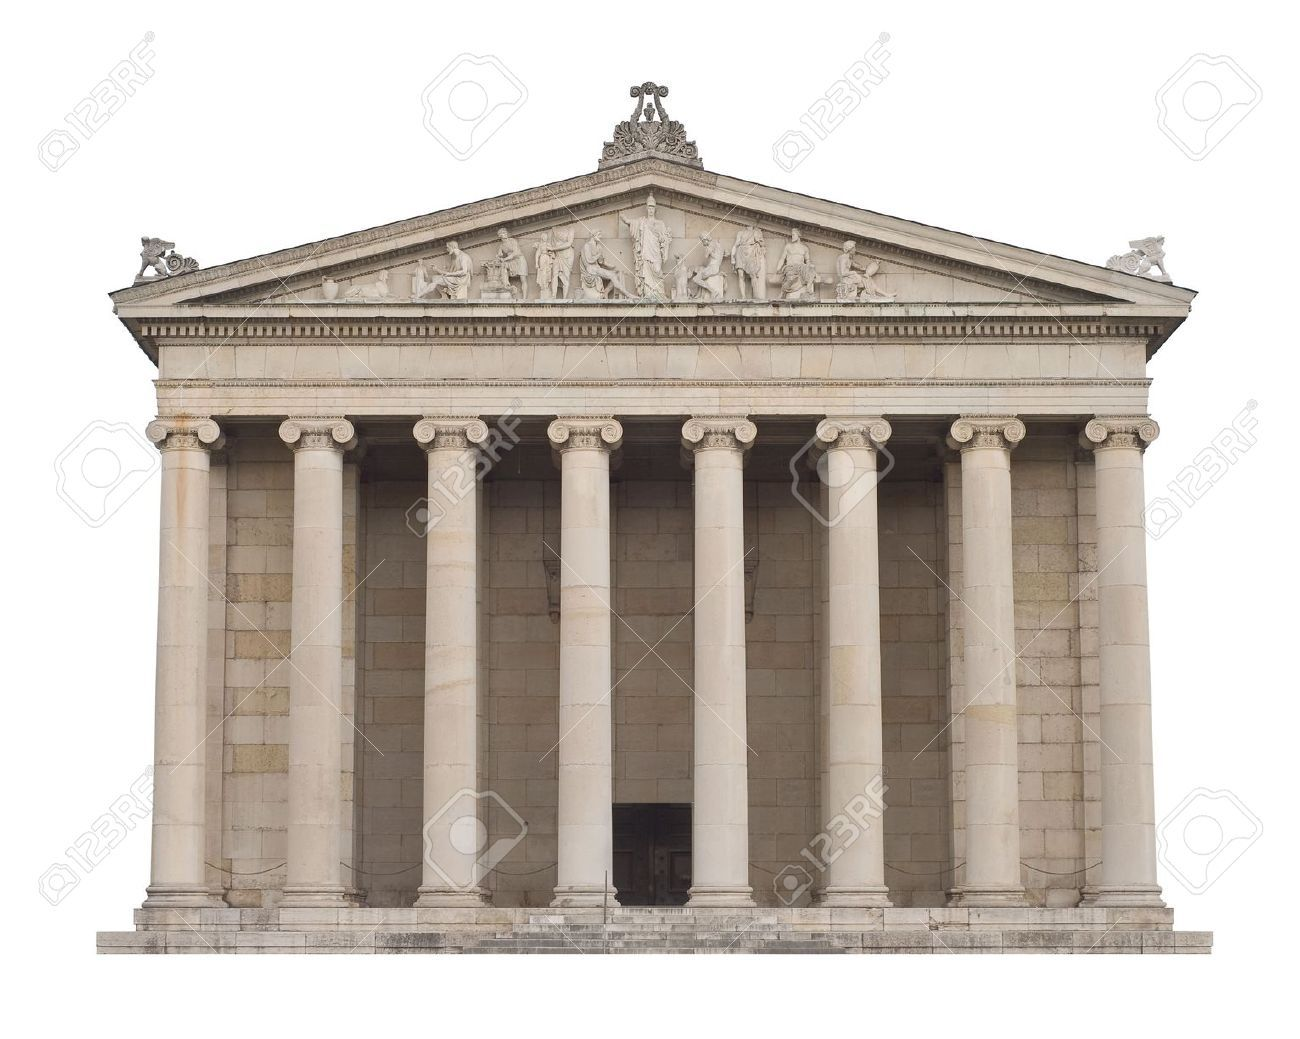 5816733 classical greek architecture in the italian style